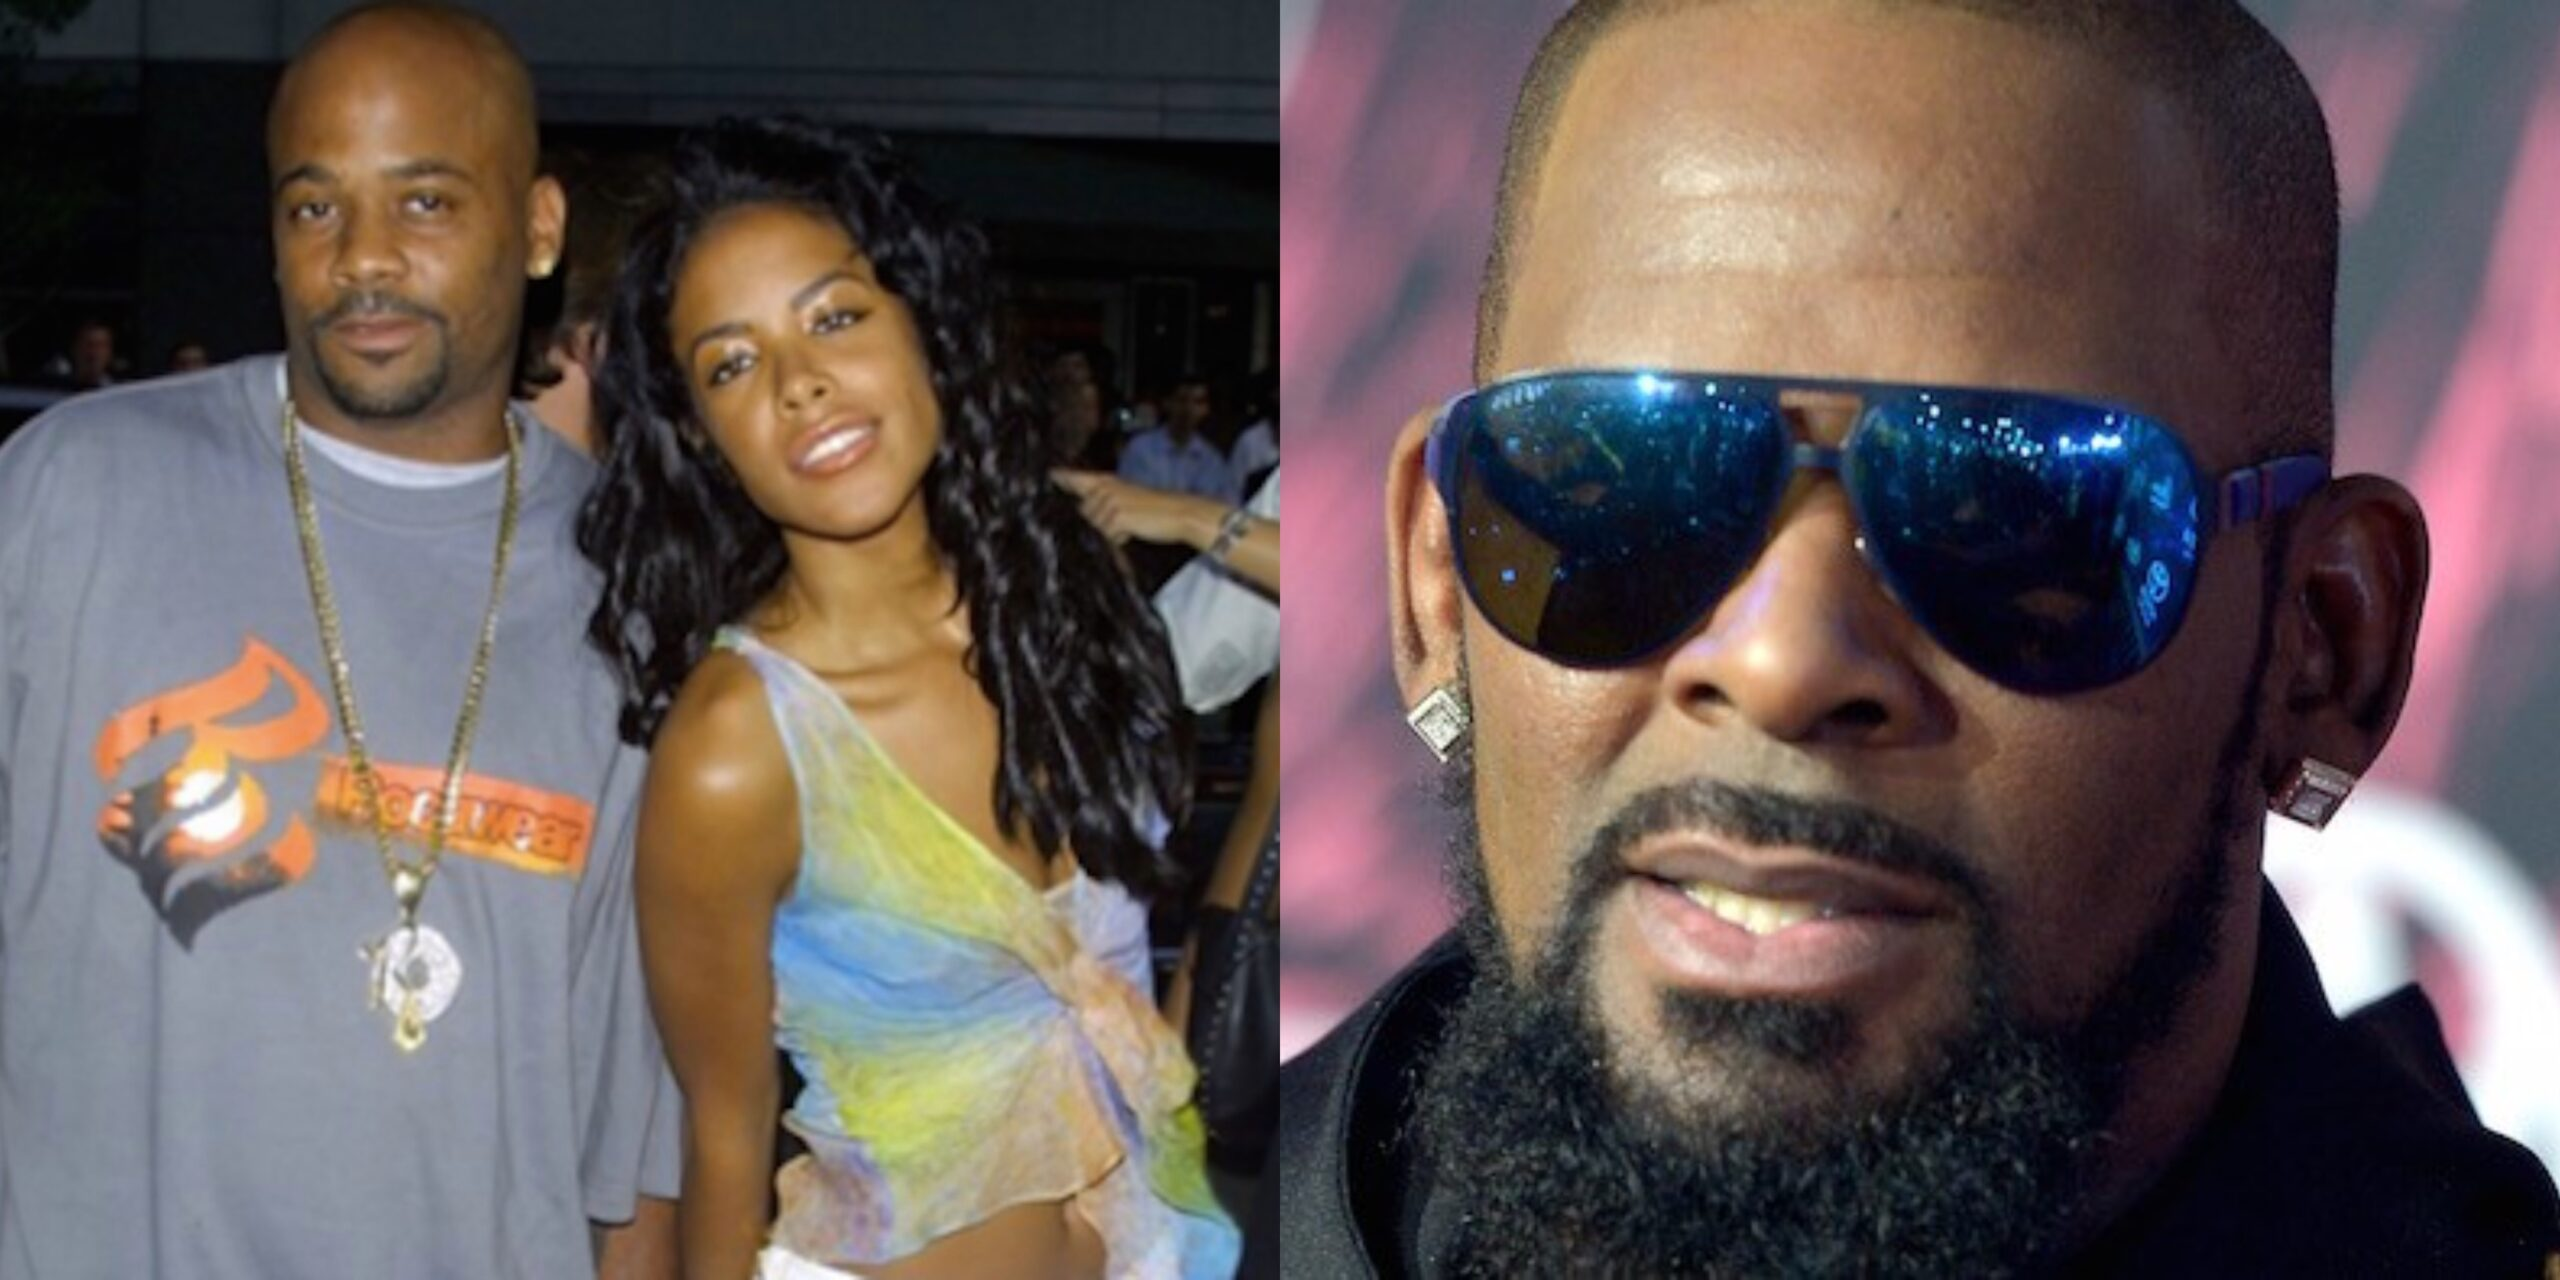 Dame Dash Weighs in on R. Kelly & Aaliyah's Relationship Amid 'Surviving R. Kelly' Premiere